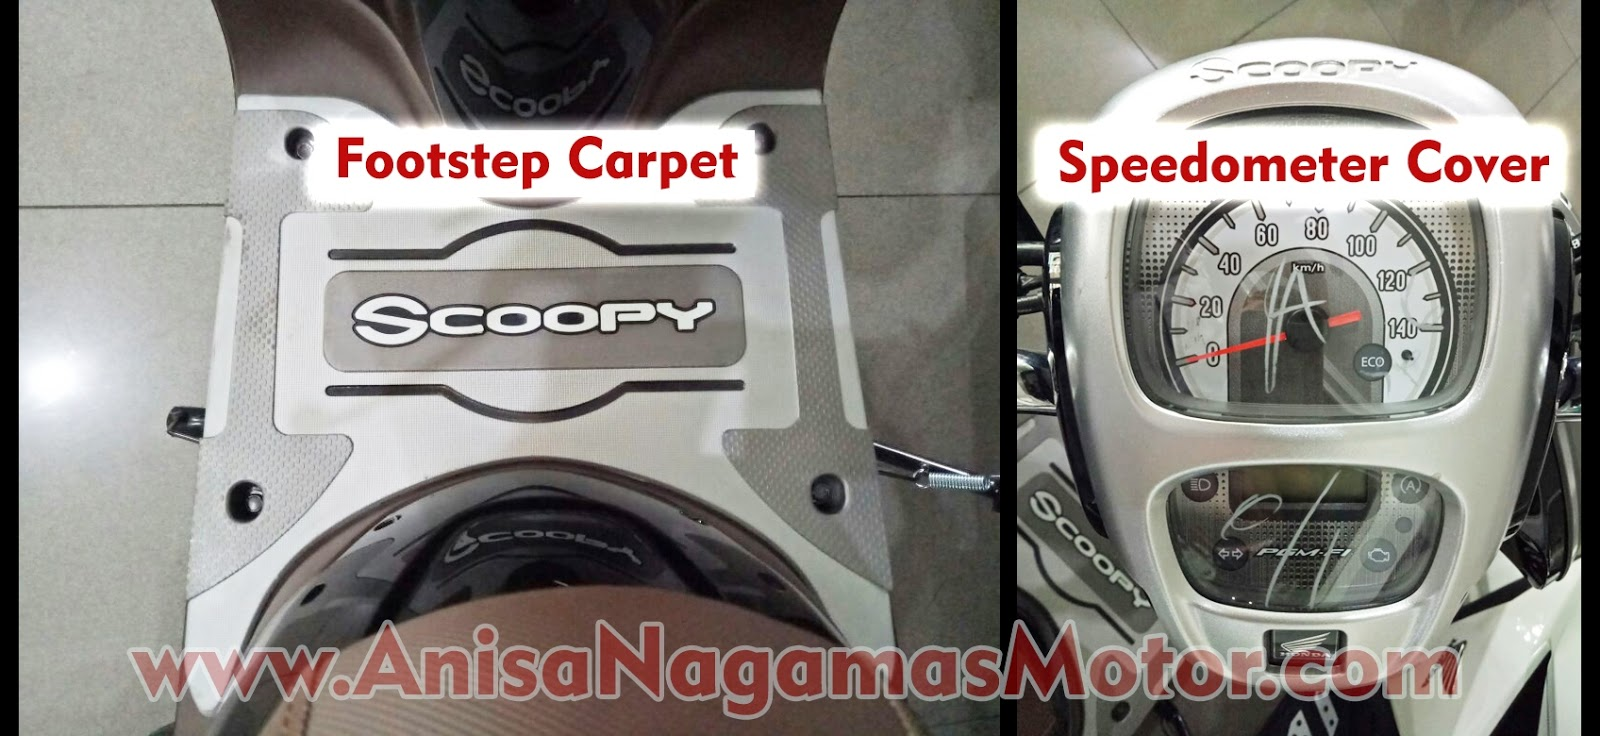 Scoopy Esp Stylish Dealer Nagamas Motor Klaten New Beat Street Black Wonogiri Harga Variasi Karpet Footstep Dan Cover Speedo Meter Sporty Plus Playfull